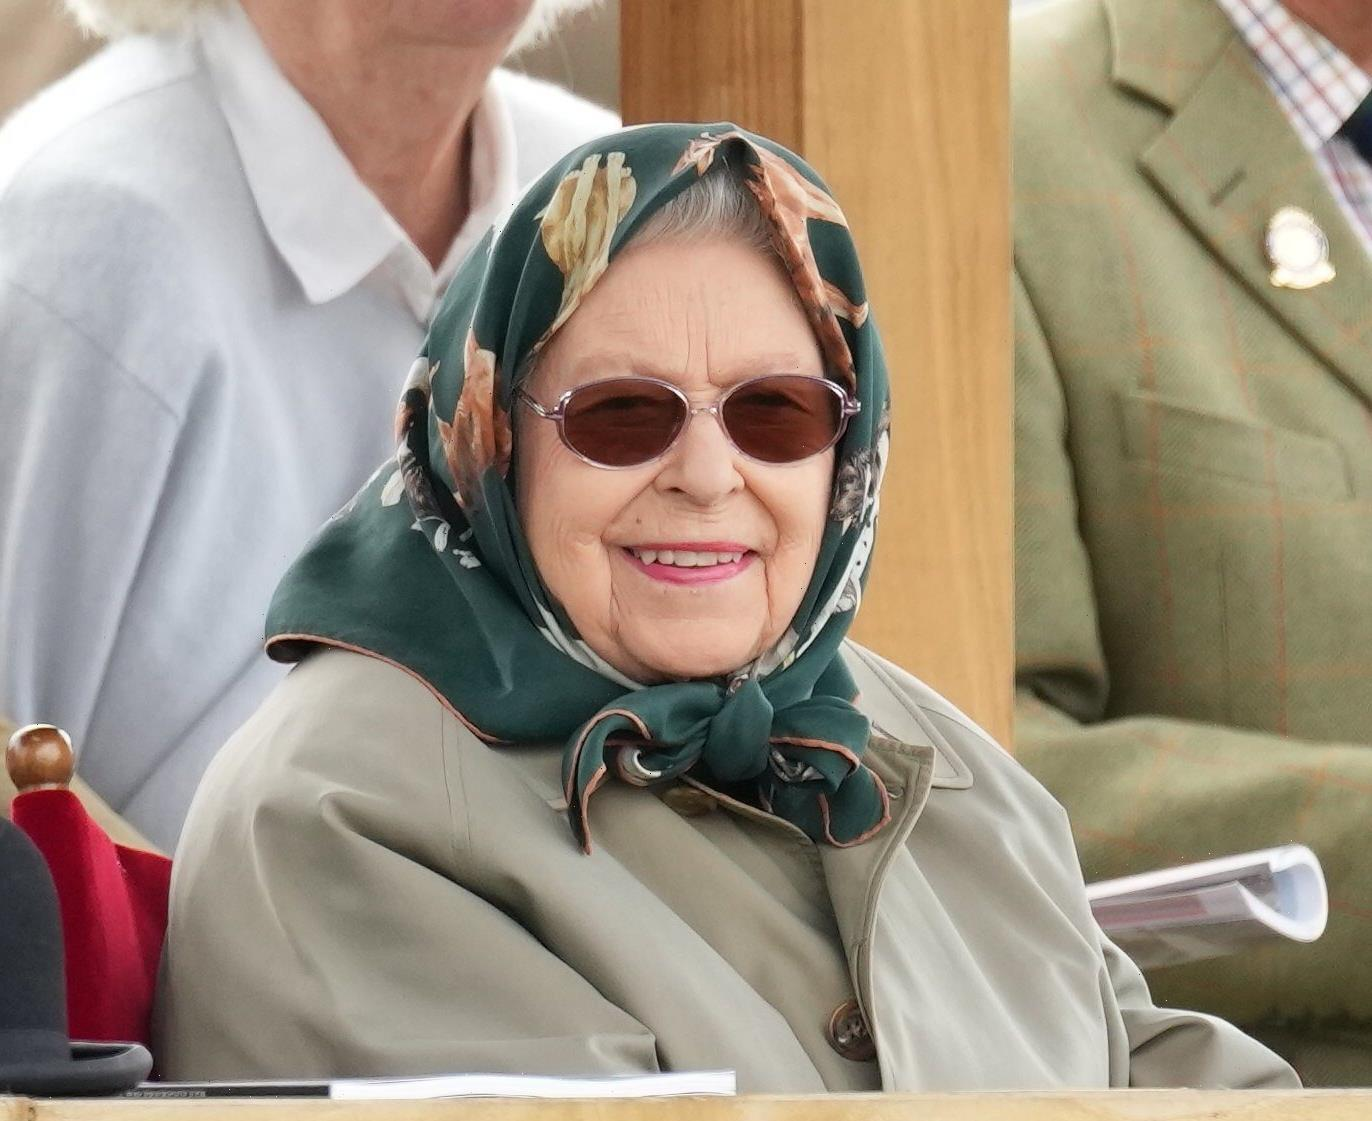 Queen all smiles again as she arrives at Royal Windsor Horse Show wrapped in headscarf and jacket